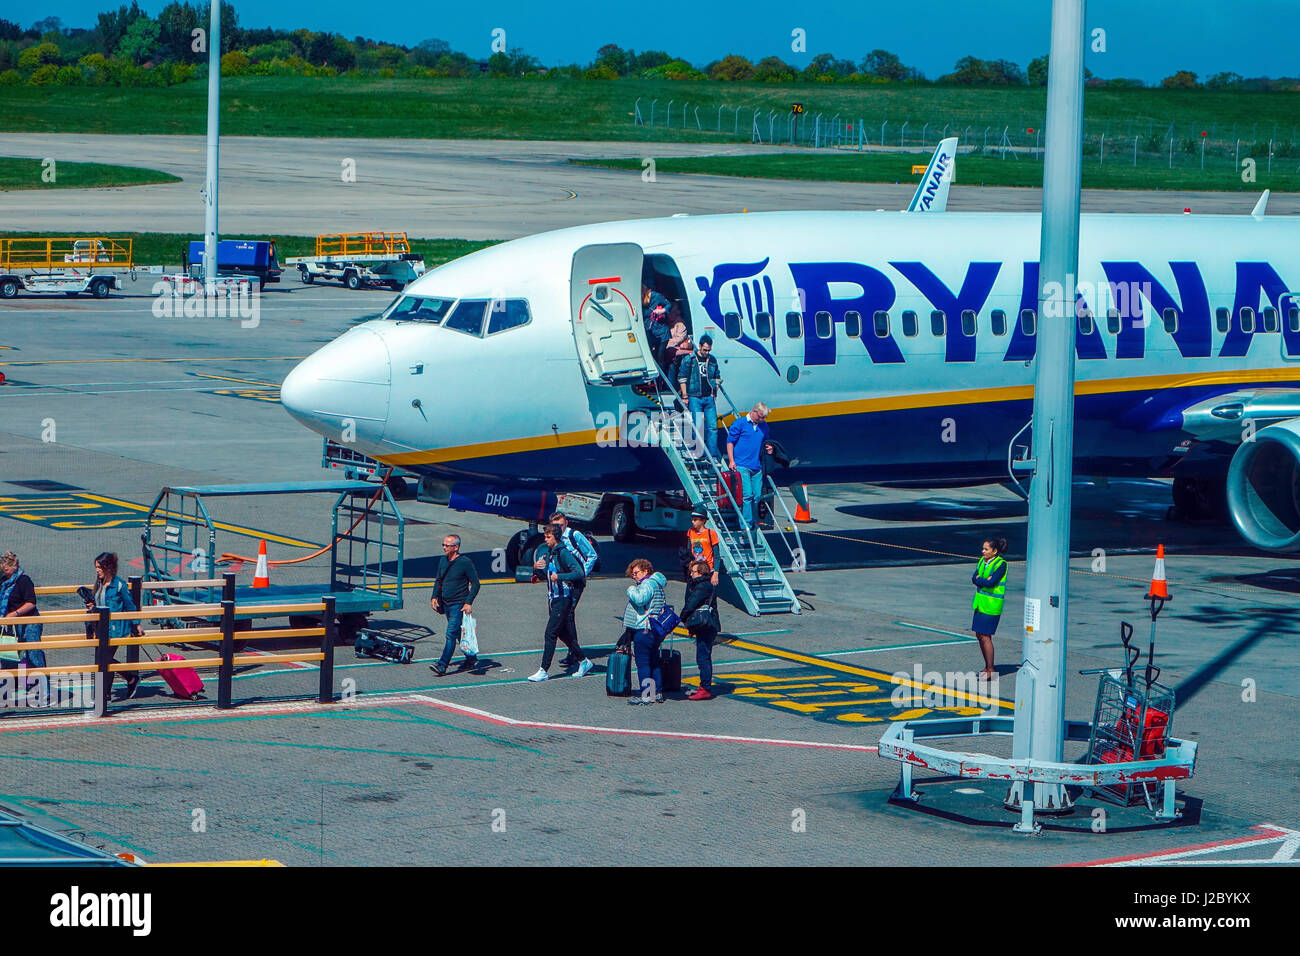 Ryanair Boeing 737 at London Stansted airport with passengers disembarking, - Stock Image